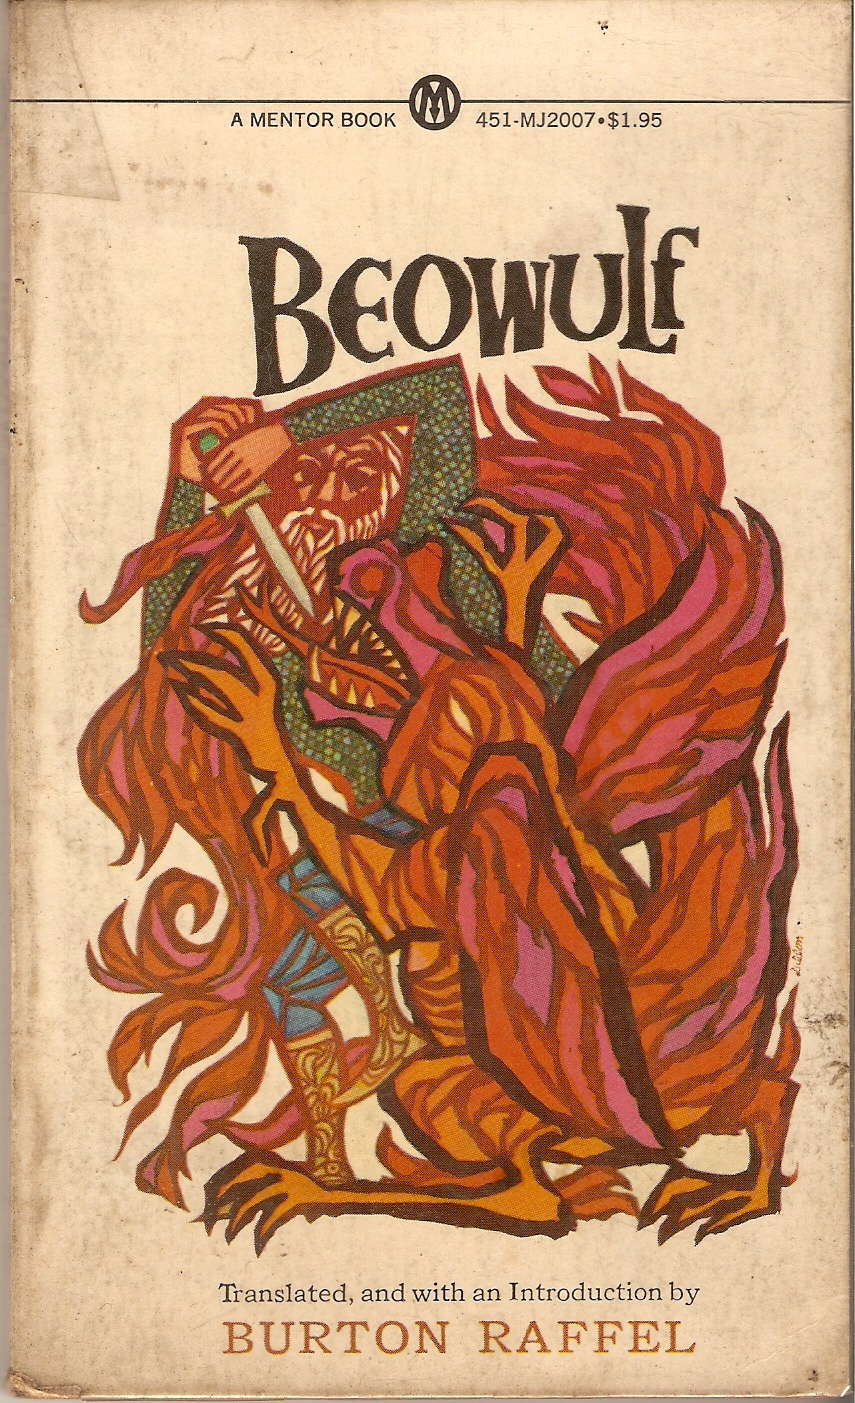 an analysis of beowulf as the ultimate hero of anglo saxon times